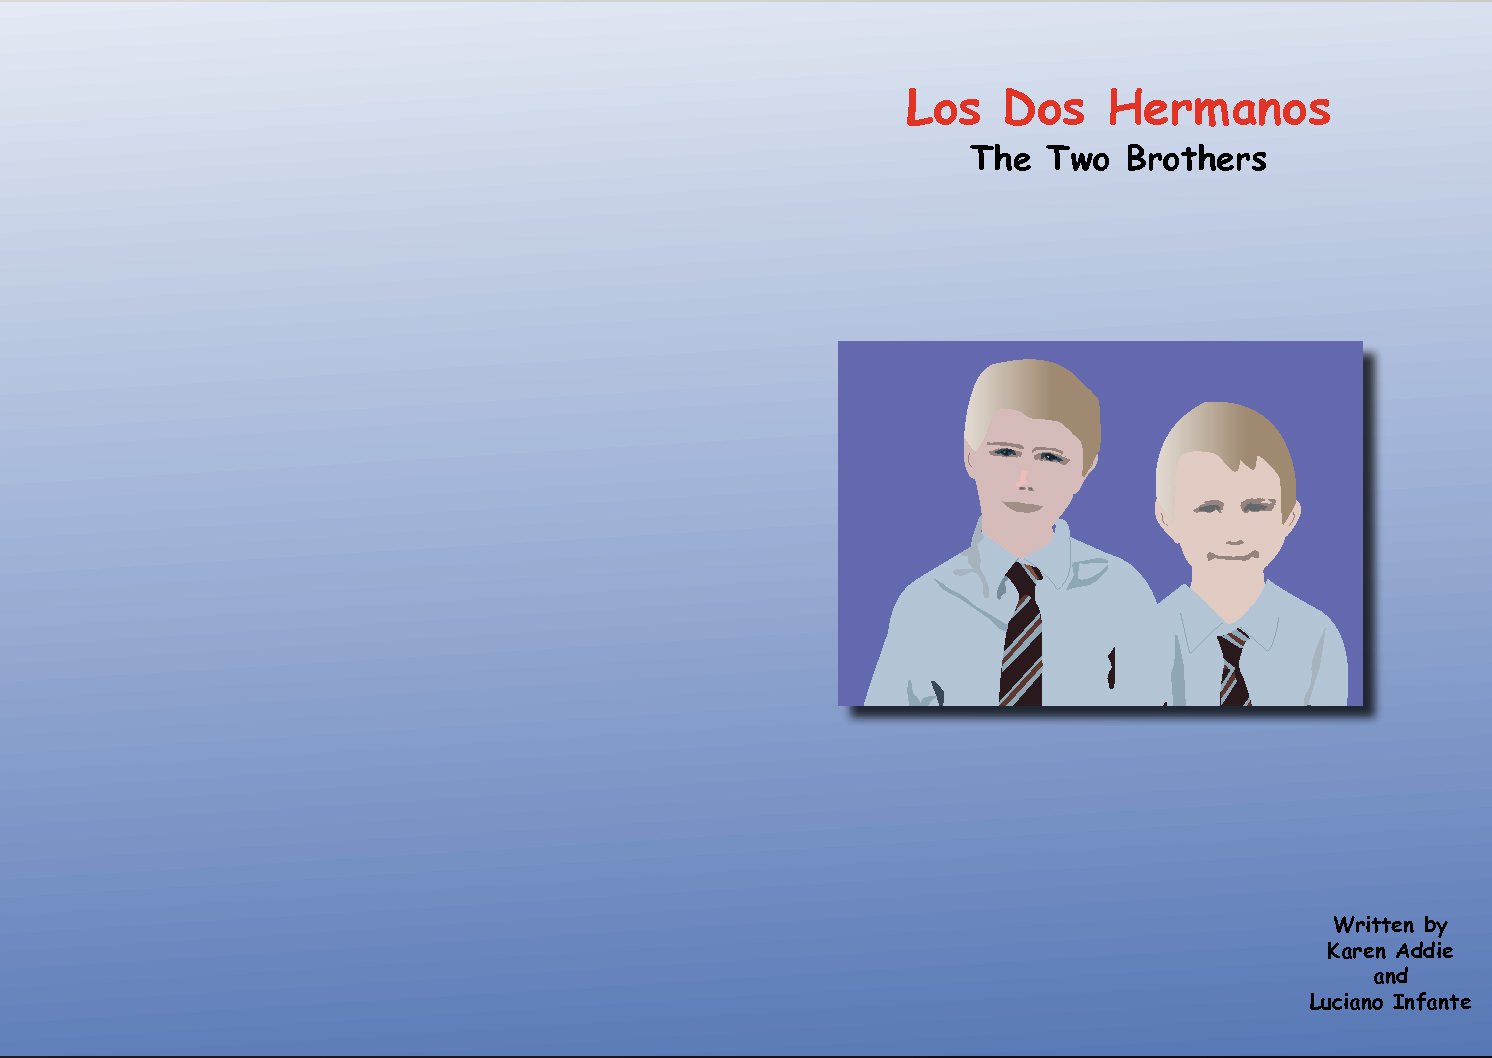 The two brothers-Los dos hermanos